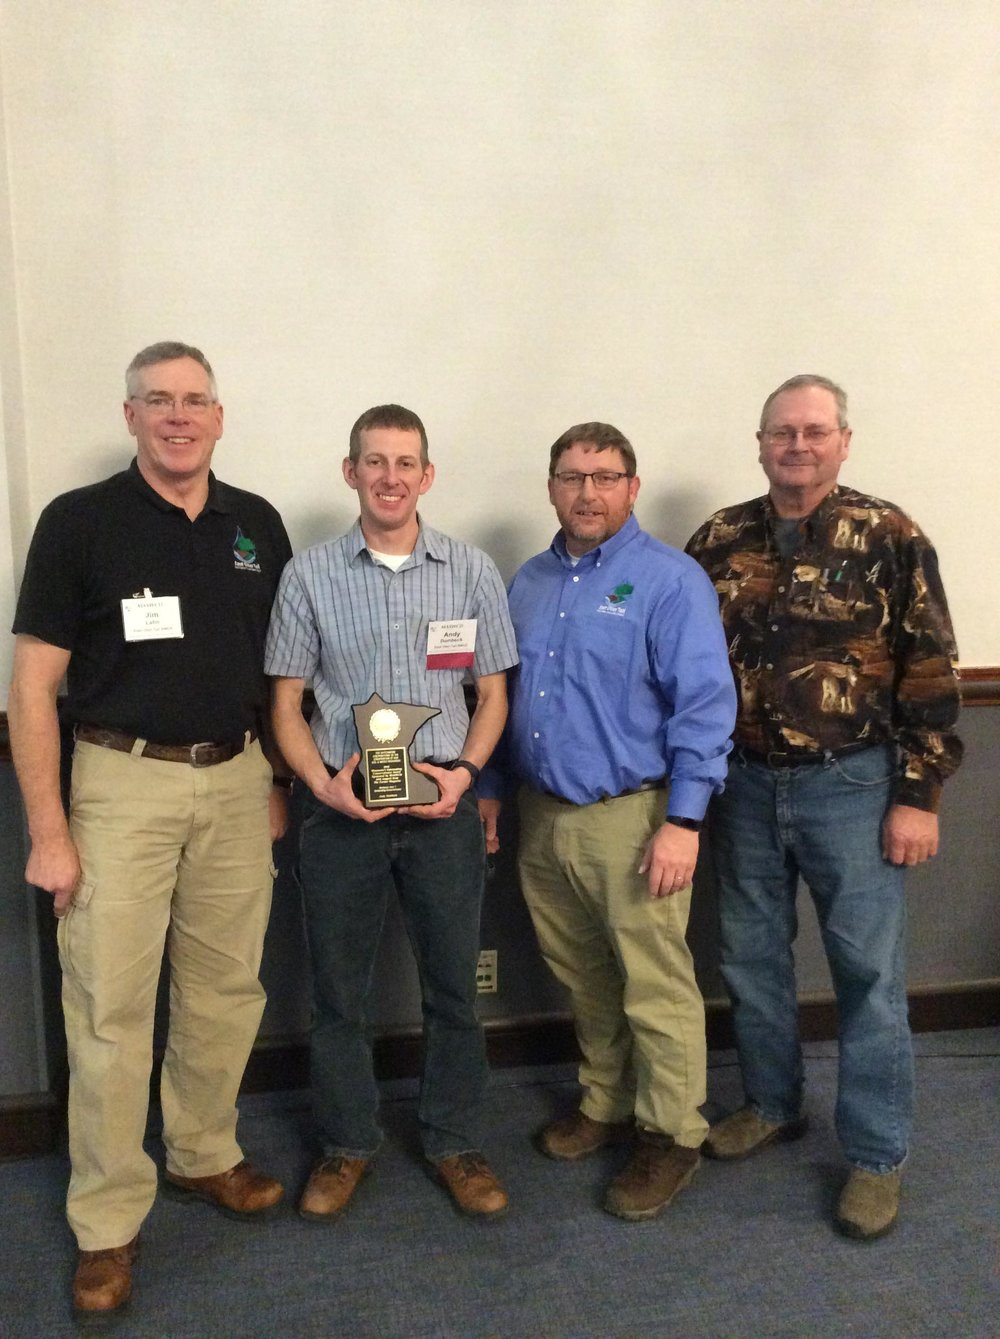 Sharing in honoring Andy Dombeck are Jim Lahn, Area Certification Specialist (left), MAWQCP Program, Andy Dombeck, Conservation Farmer, Darren Newville, District Manager for the East Otter Tail & Wadena SWCDs and Lyle Dittmann, East Otter Tail SWCD Board Chairman. Submitted photo